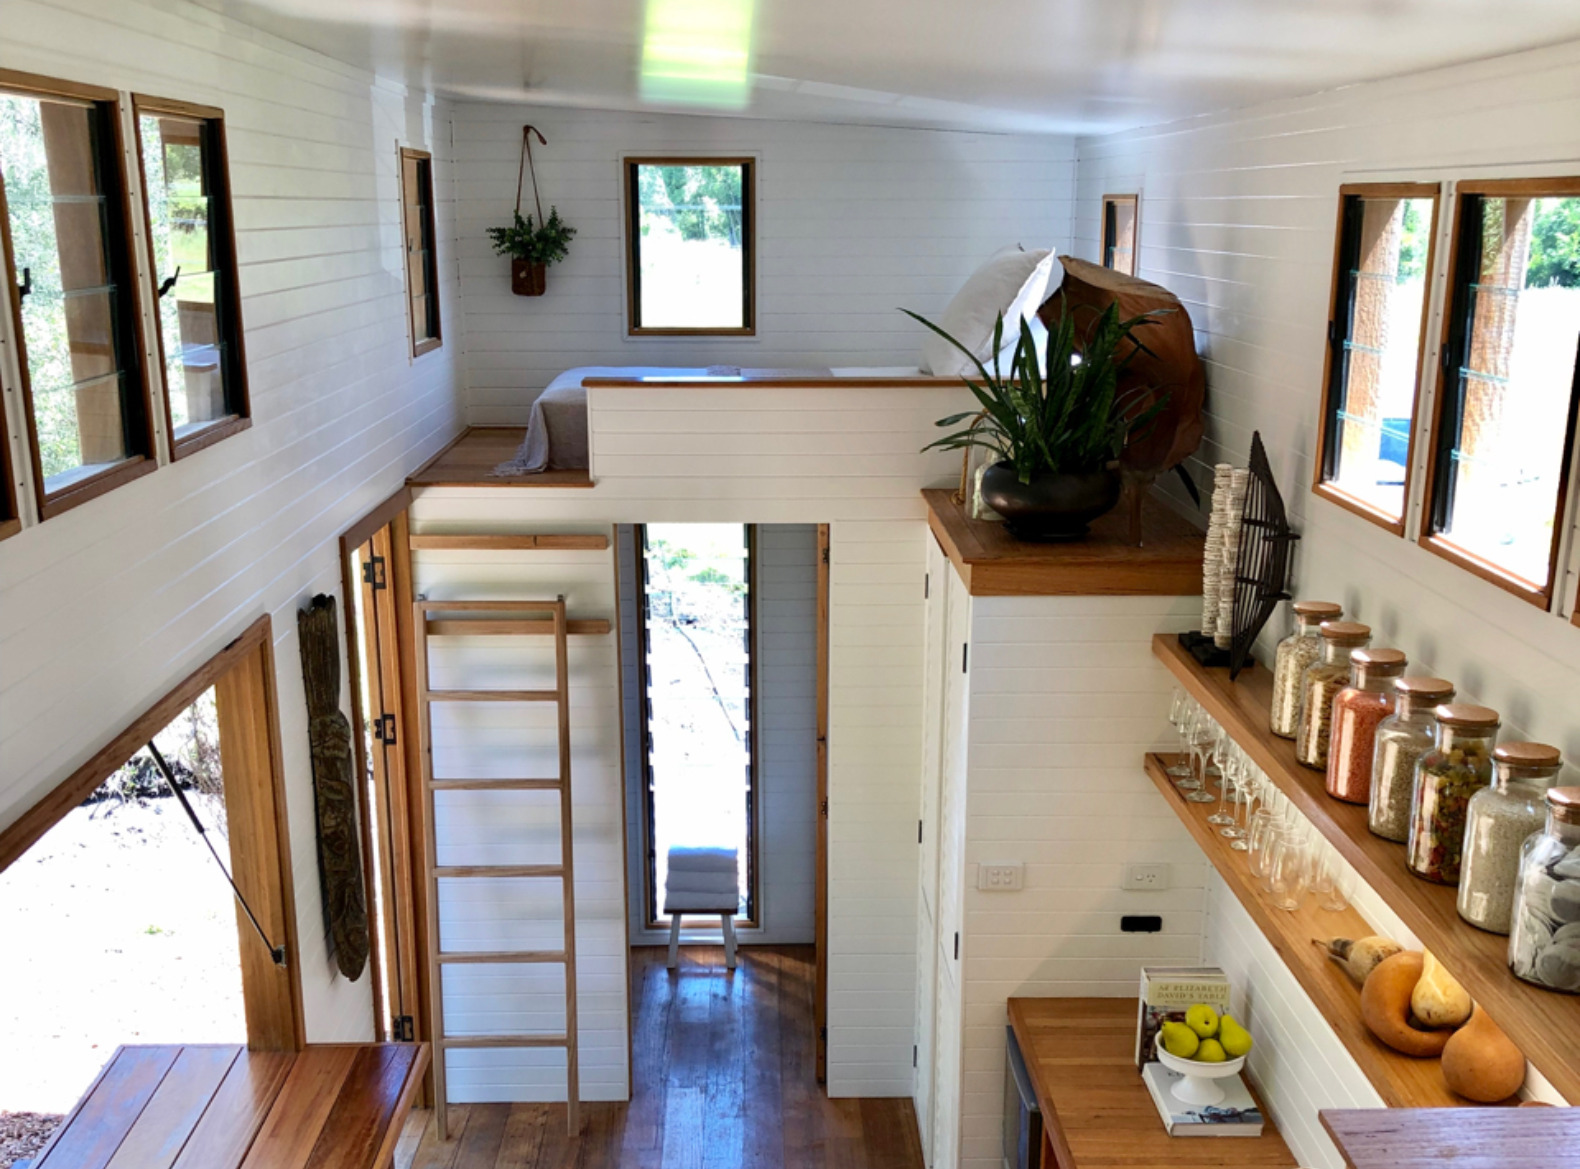 Banjo Tiny House8 - Get Small House Design Room Pictures